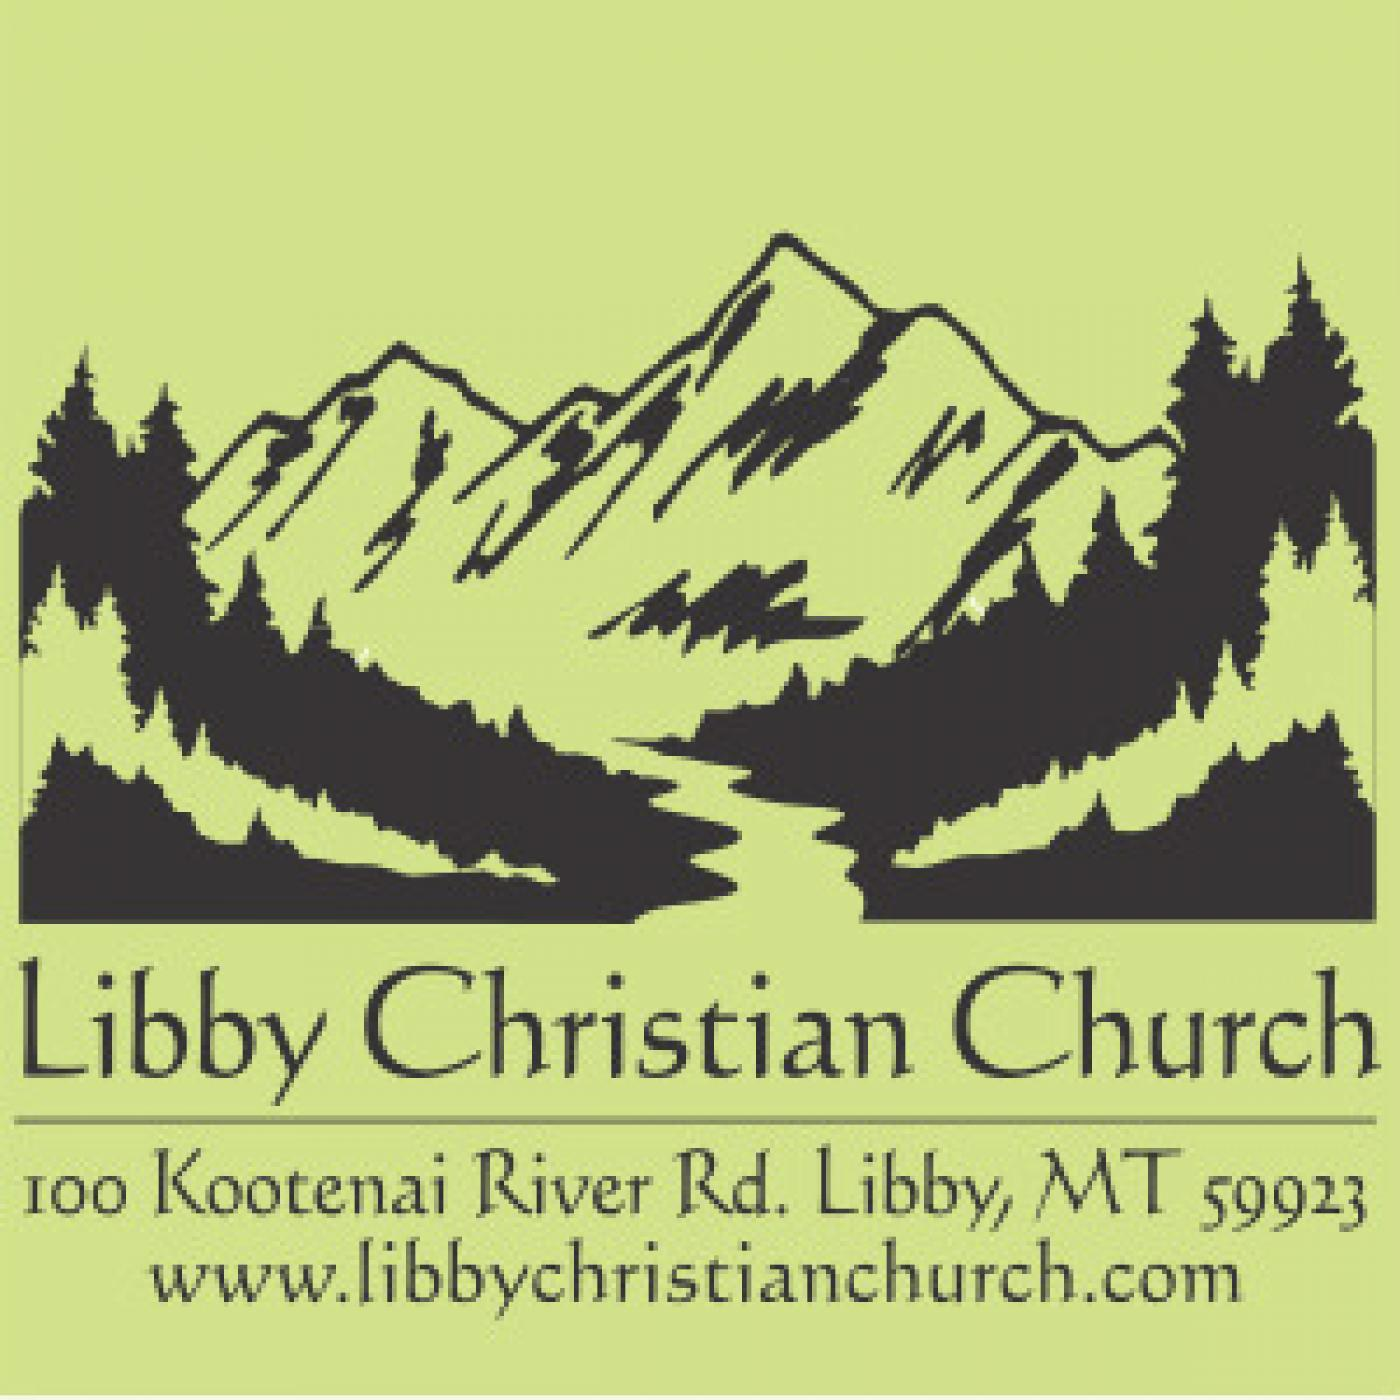 Libby Christian Church Messages